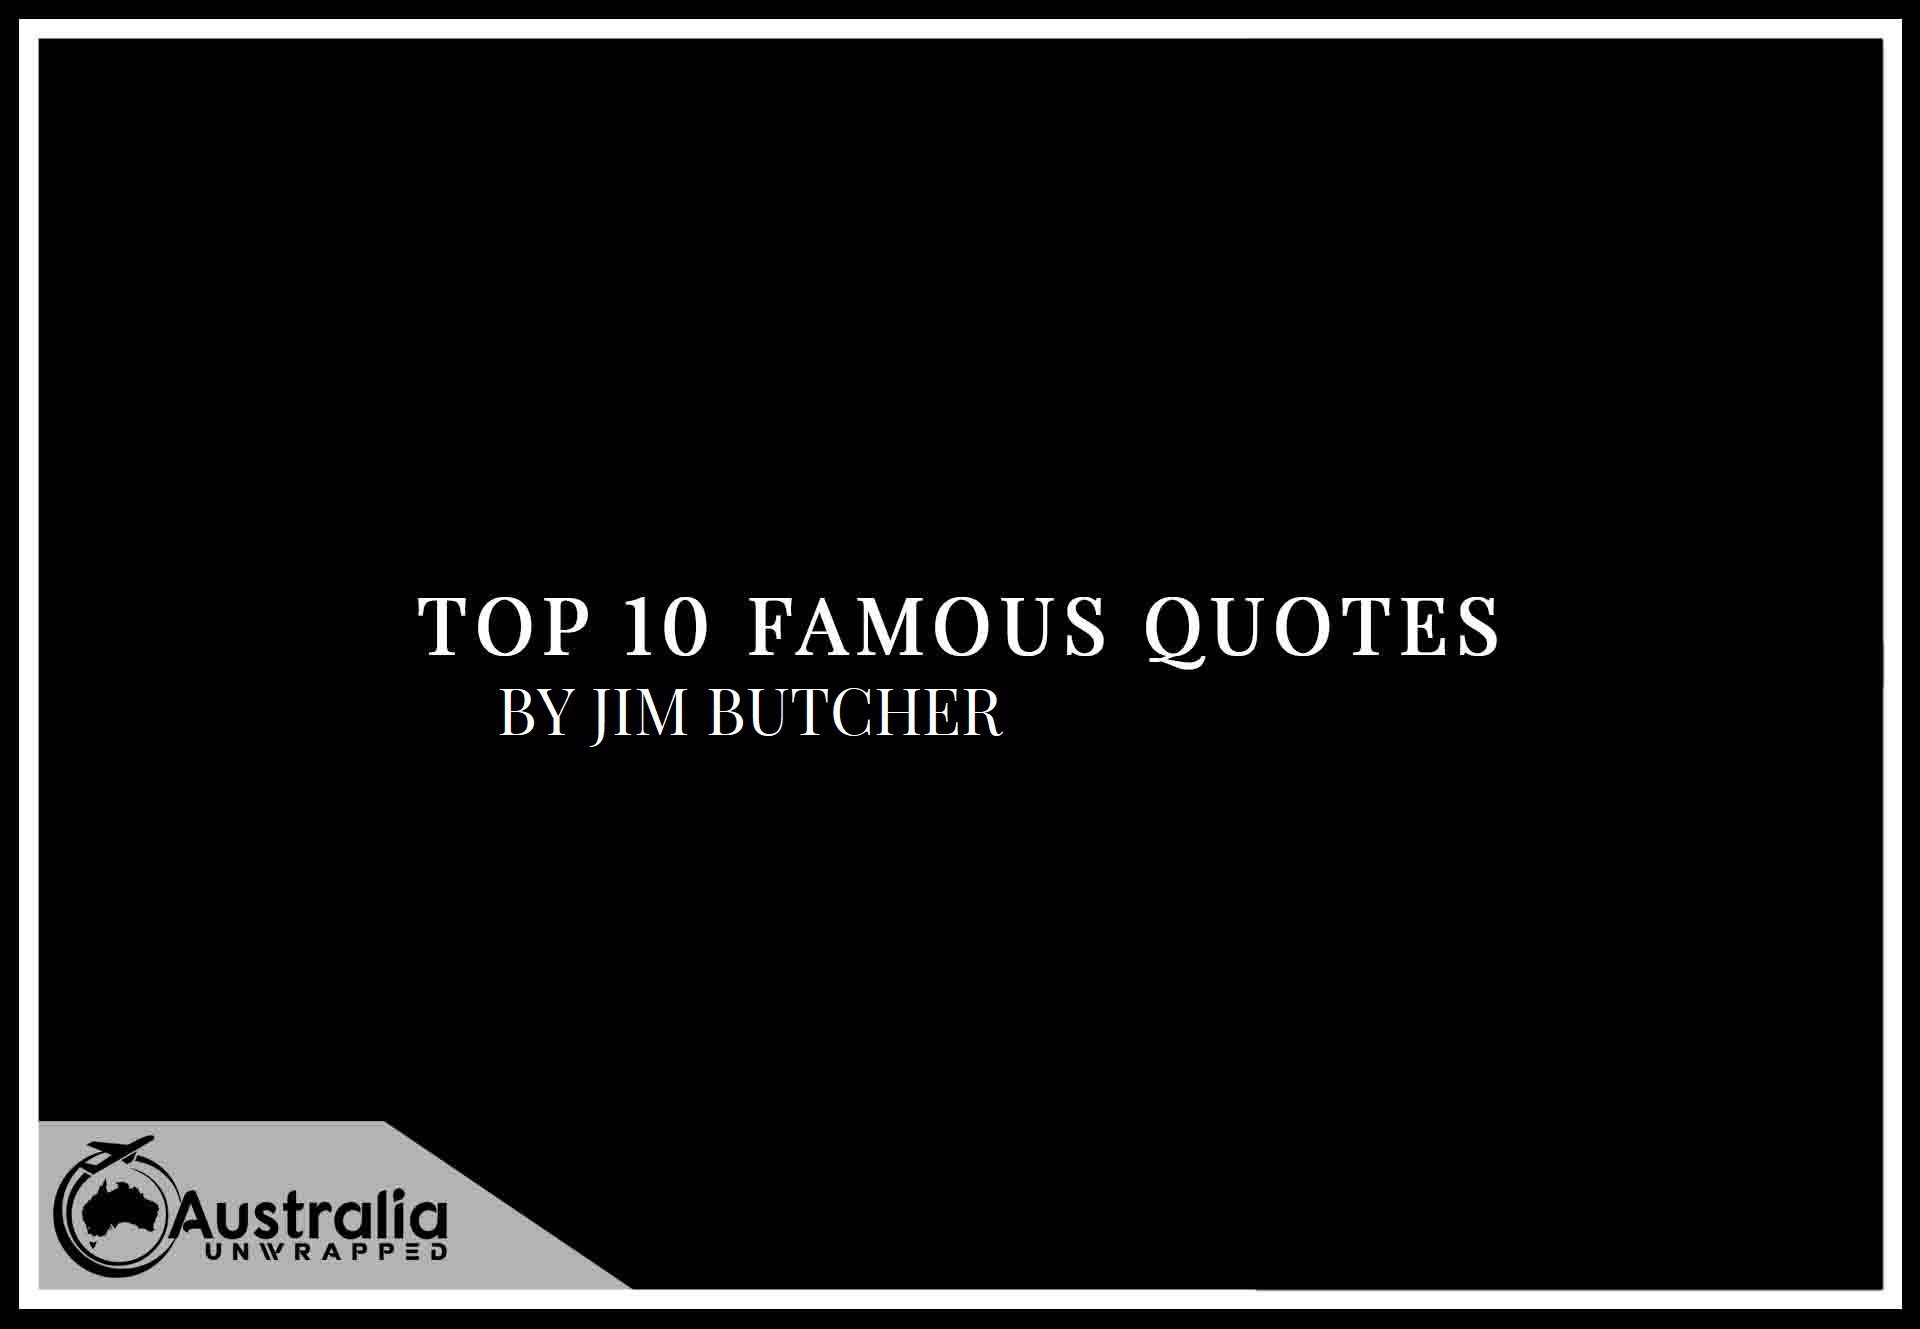 Top 10 Famous Quotes by Author Jim Butcher